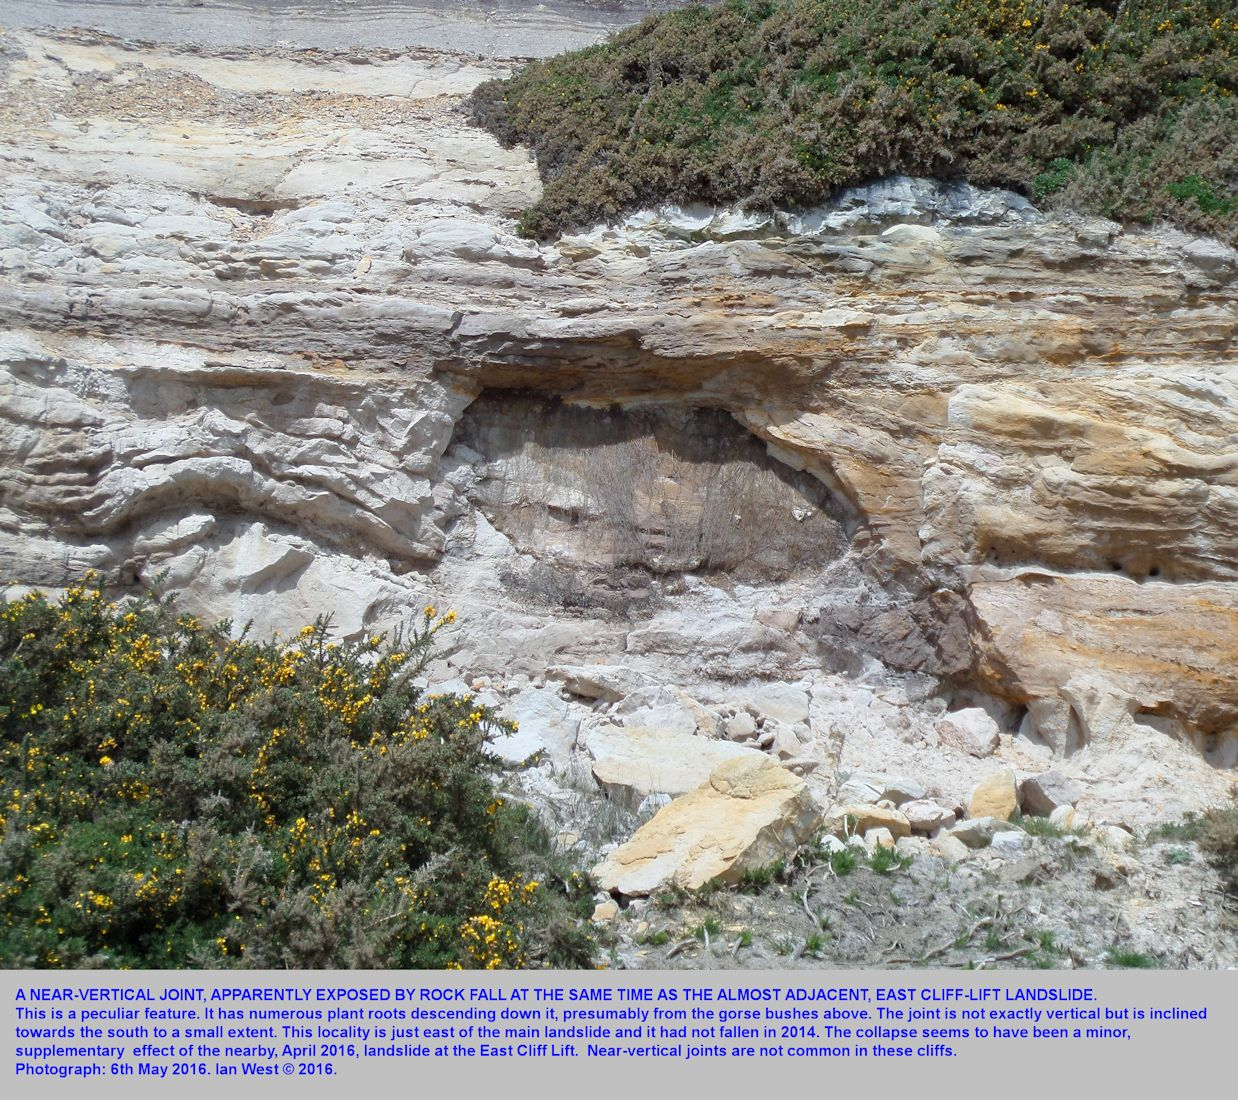 A near-vertical joint with plant roots that was exposed, probably at the same time as the 2016 East Cliff Lift Landslide, Bournemouth, Dorset, this is just to the east of the main cliff-fall